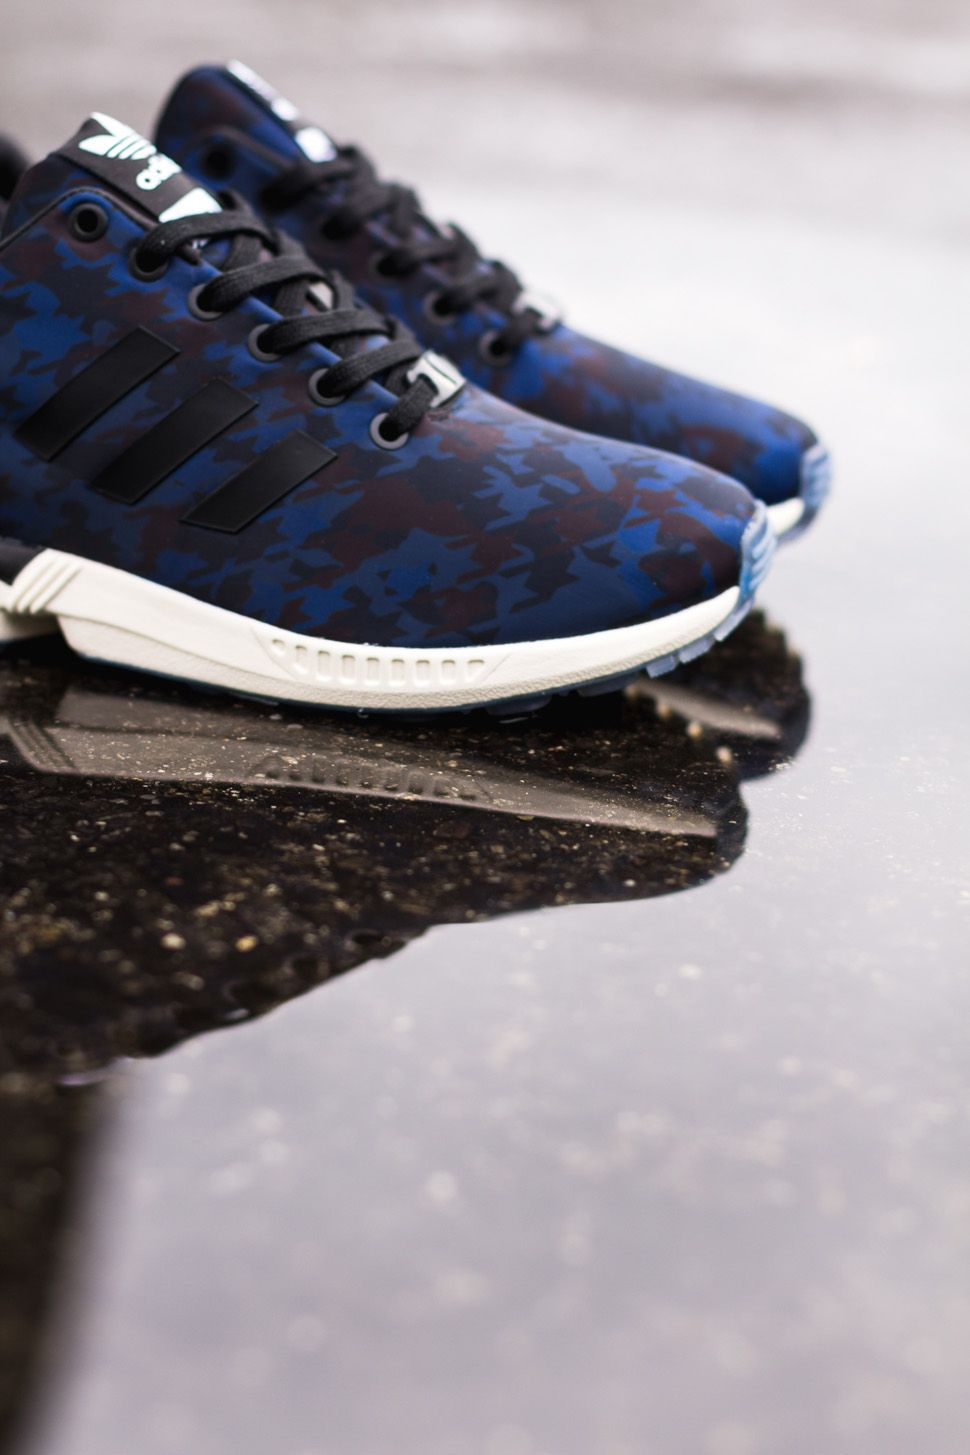 promo code 0169c bea79 ... reduced italia independent x adidas zx flux core navy 83ddd c4cd6